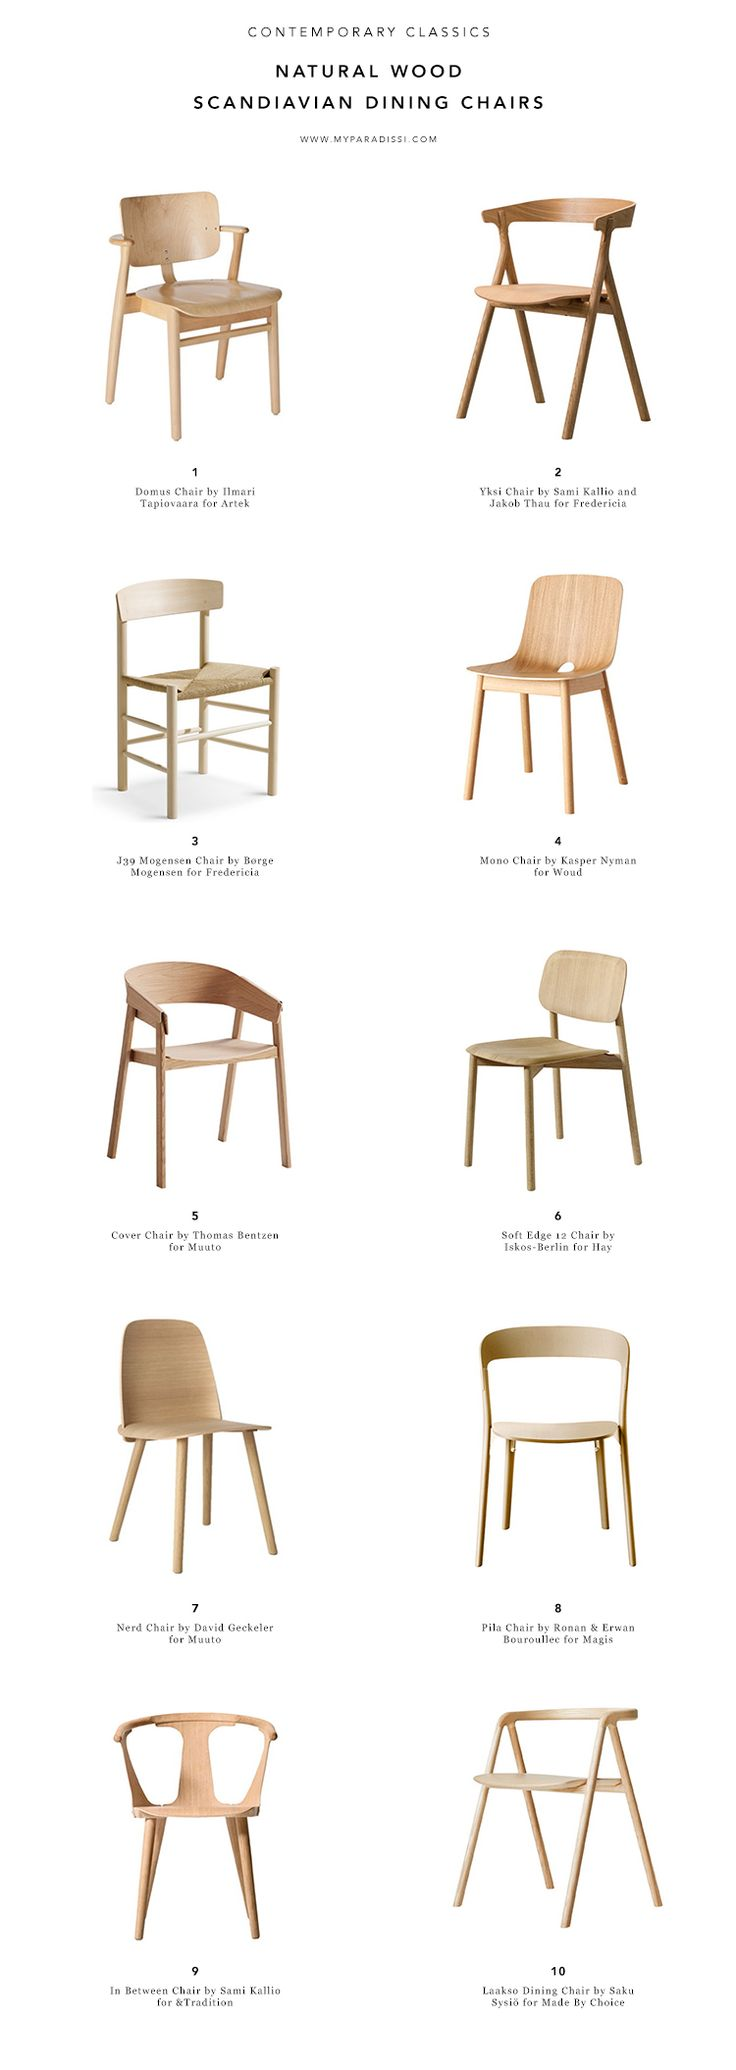 CONTEMPORARY CLASSICS: Scandinavian natural wood dining chairs